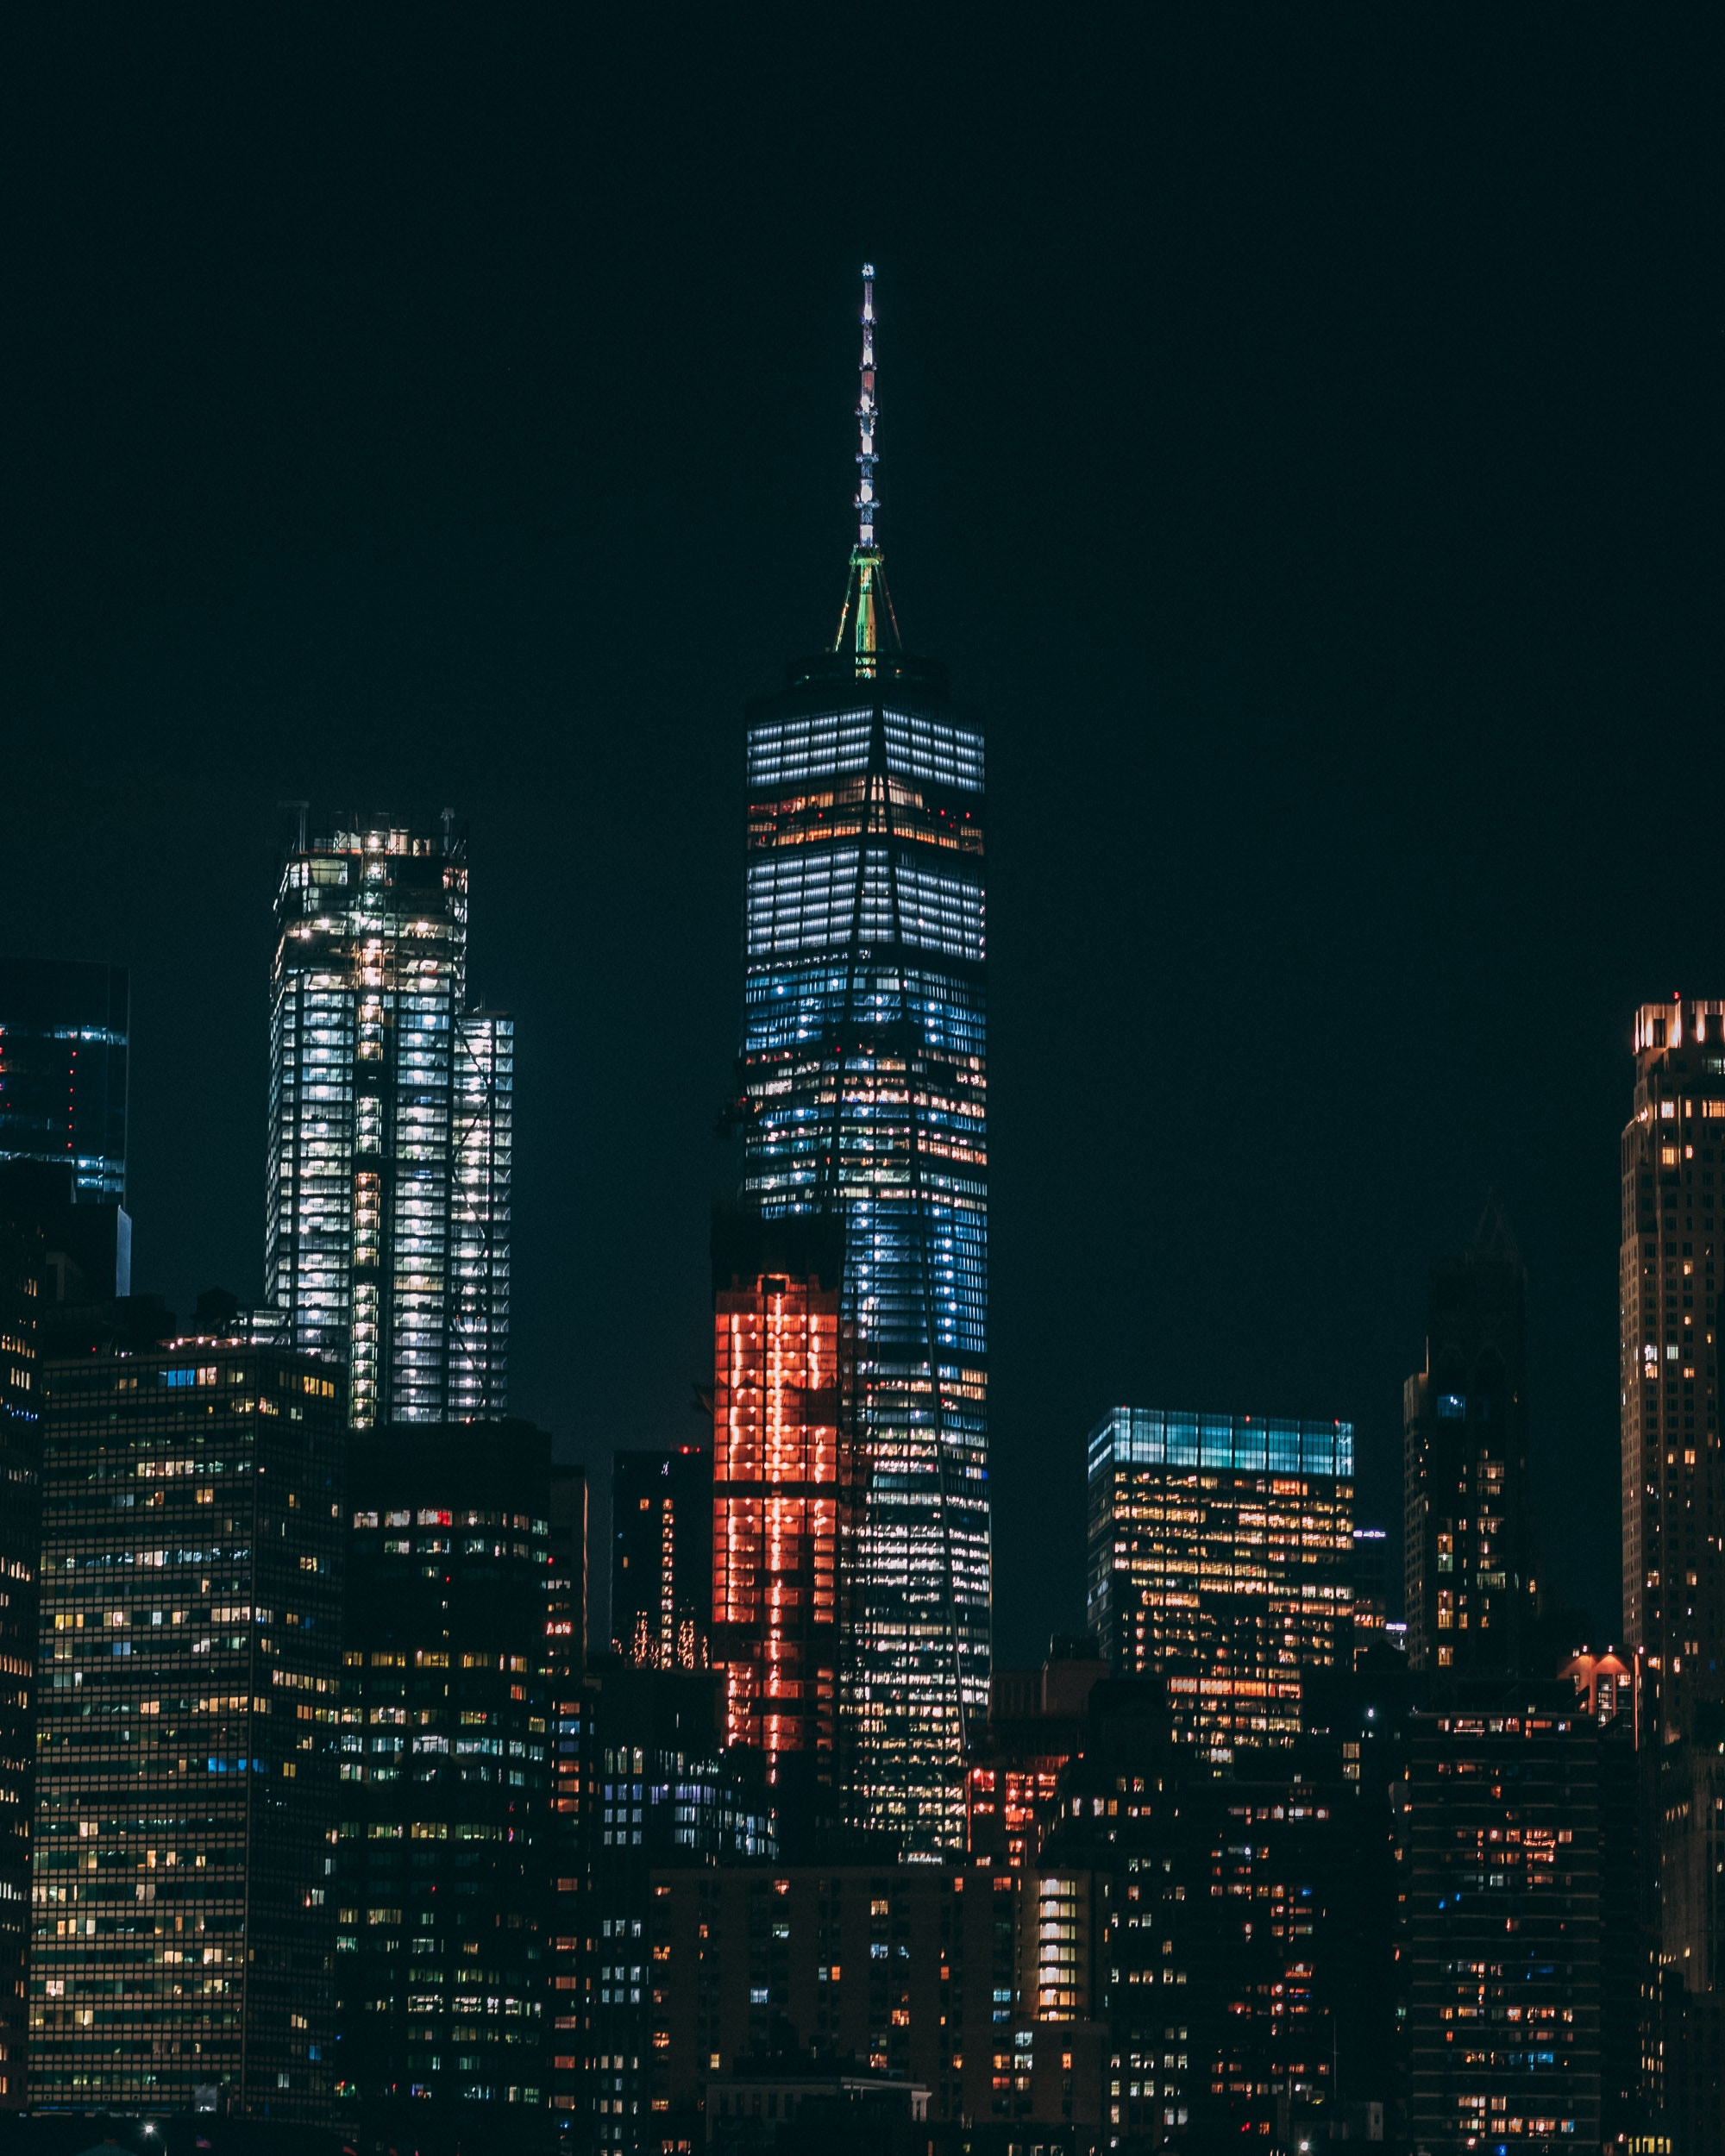 Group M consolidated three Midtown locations into new headquarters at 3 World Trade Center. Photo by  MJ Tangonan  on  Unsplash